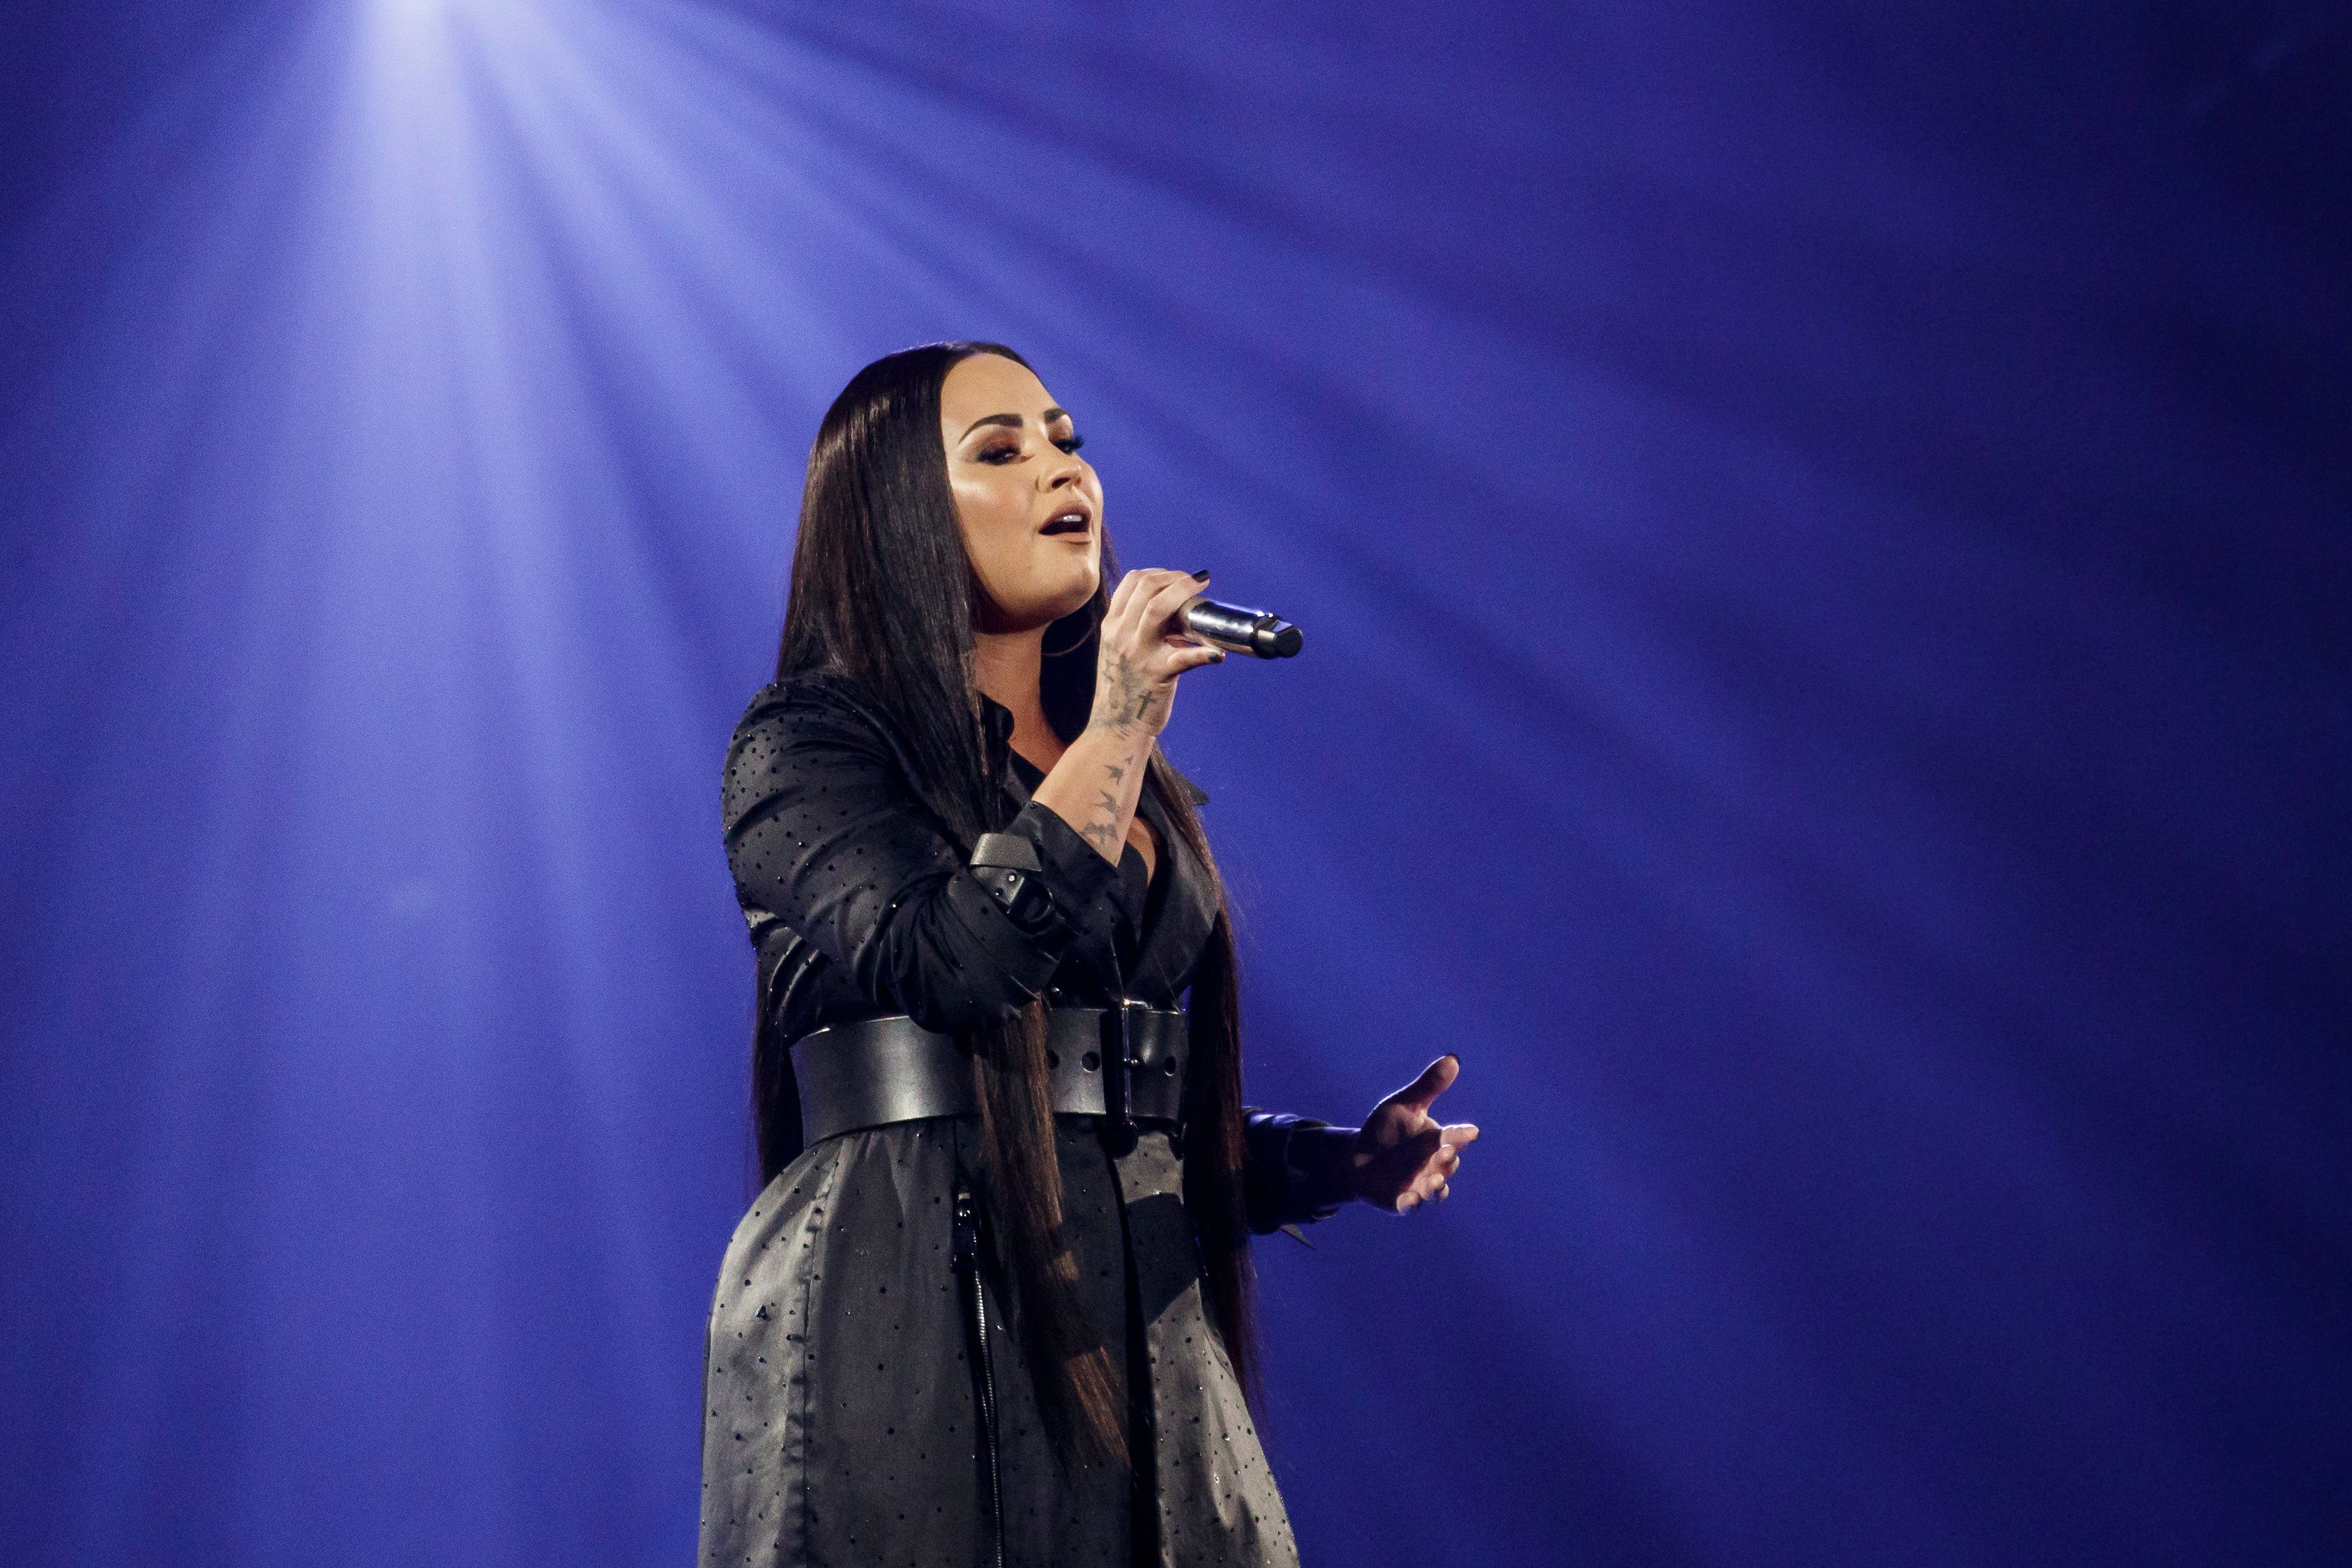 Demi Lovato Sings About Recent Alcohol Relapse In New Song